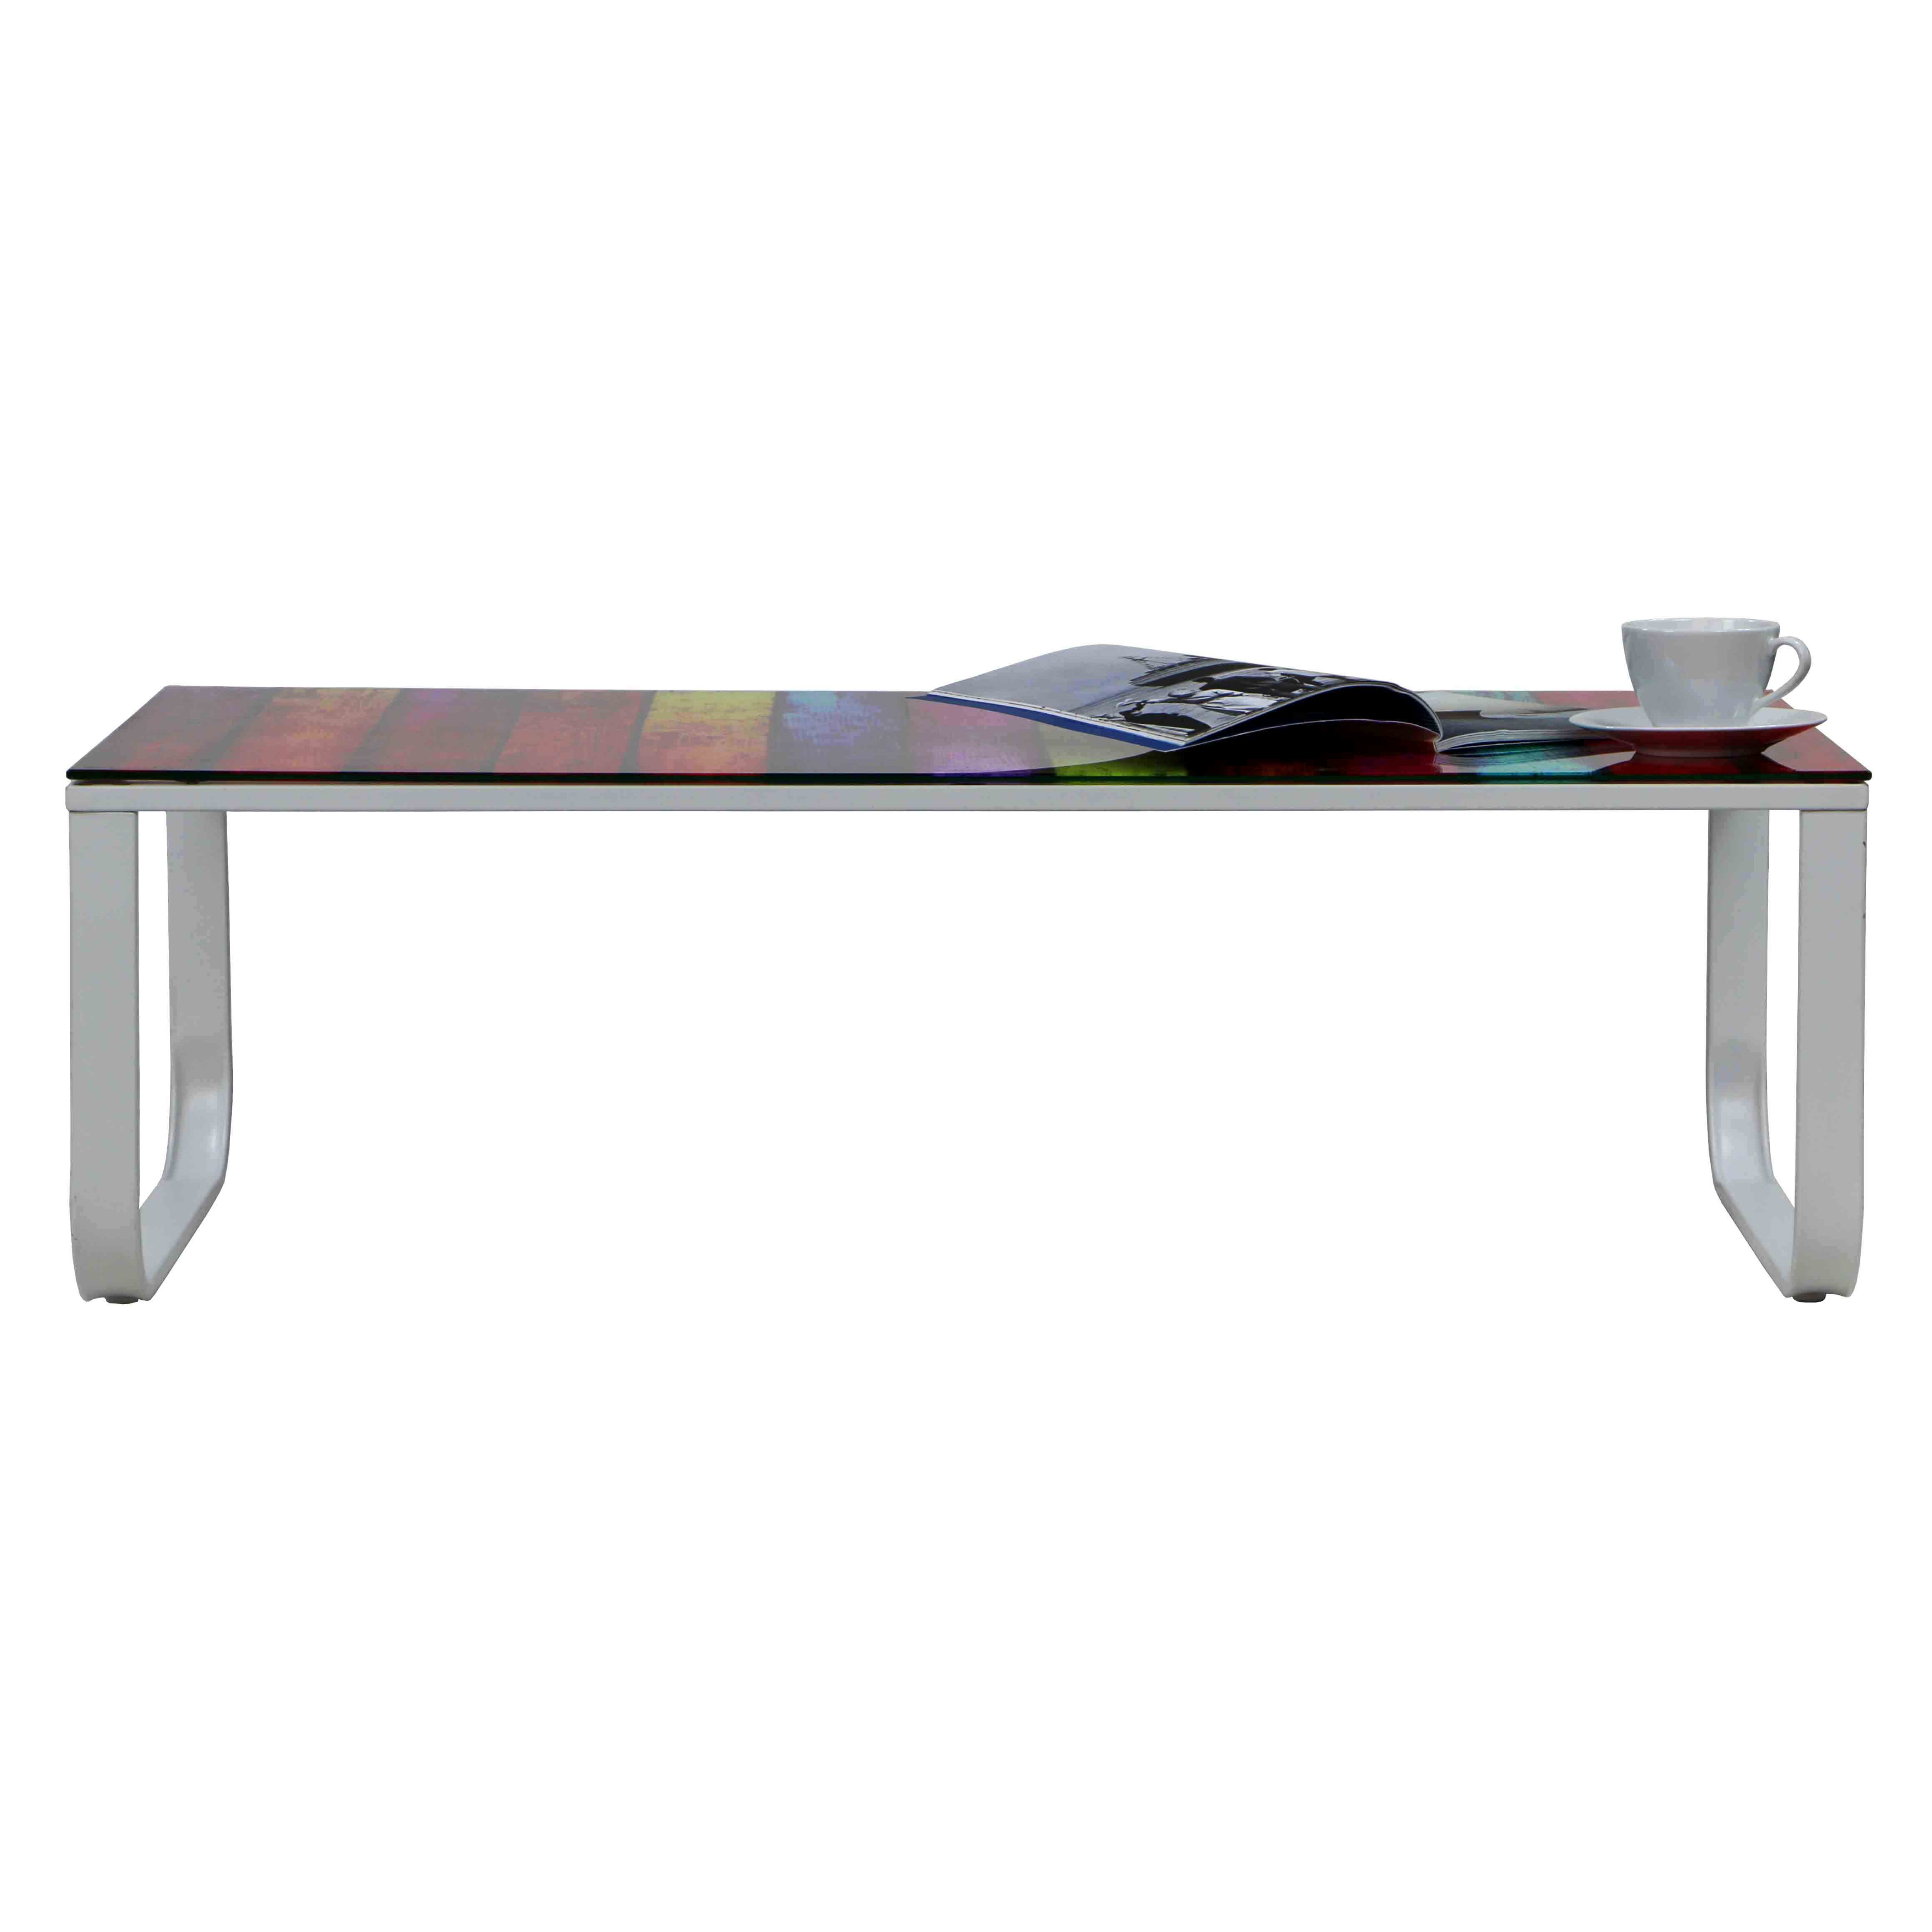 Iris rainbow tempered glass coffee table furniture for Tempered glass coffee table